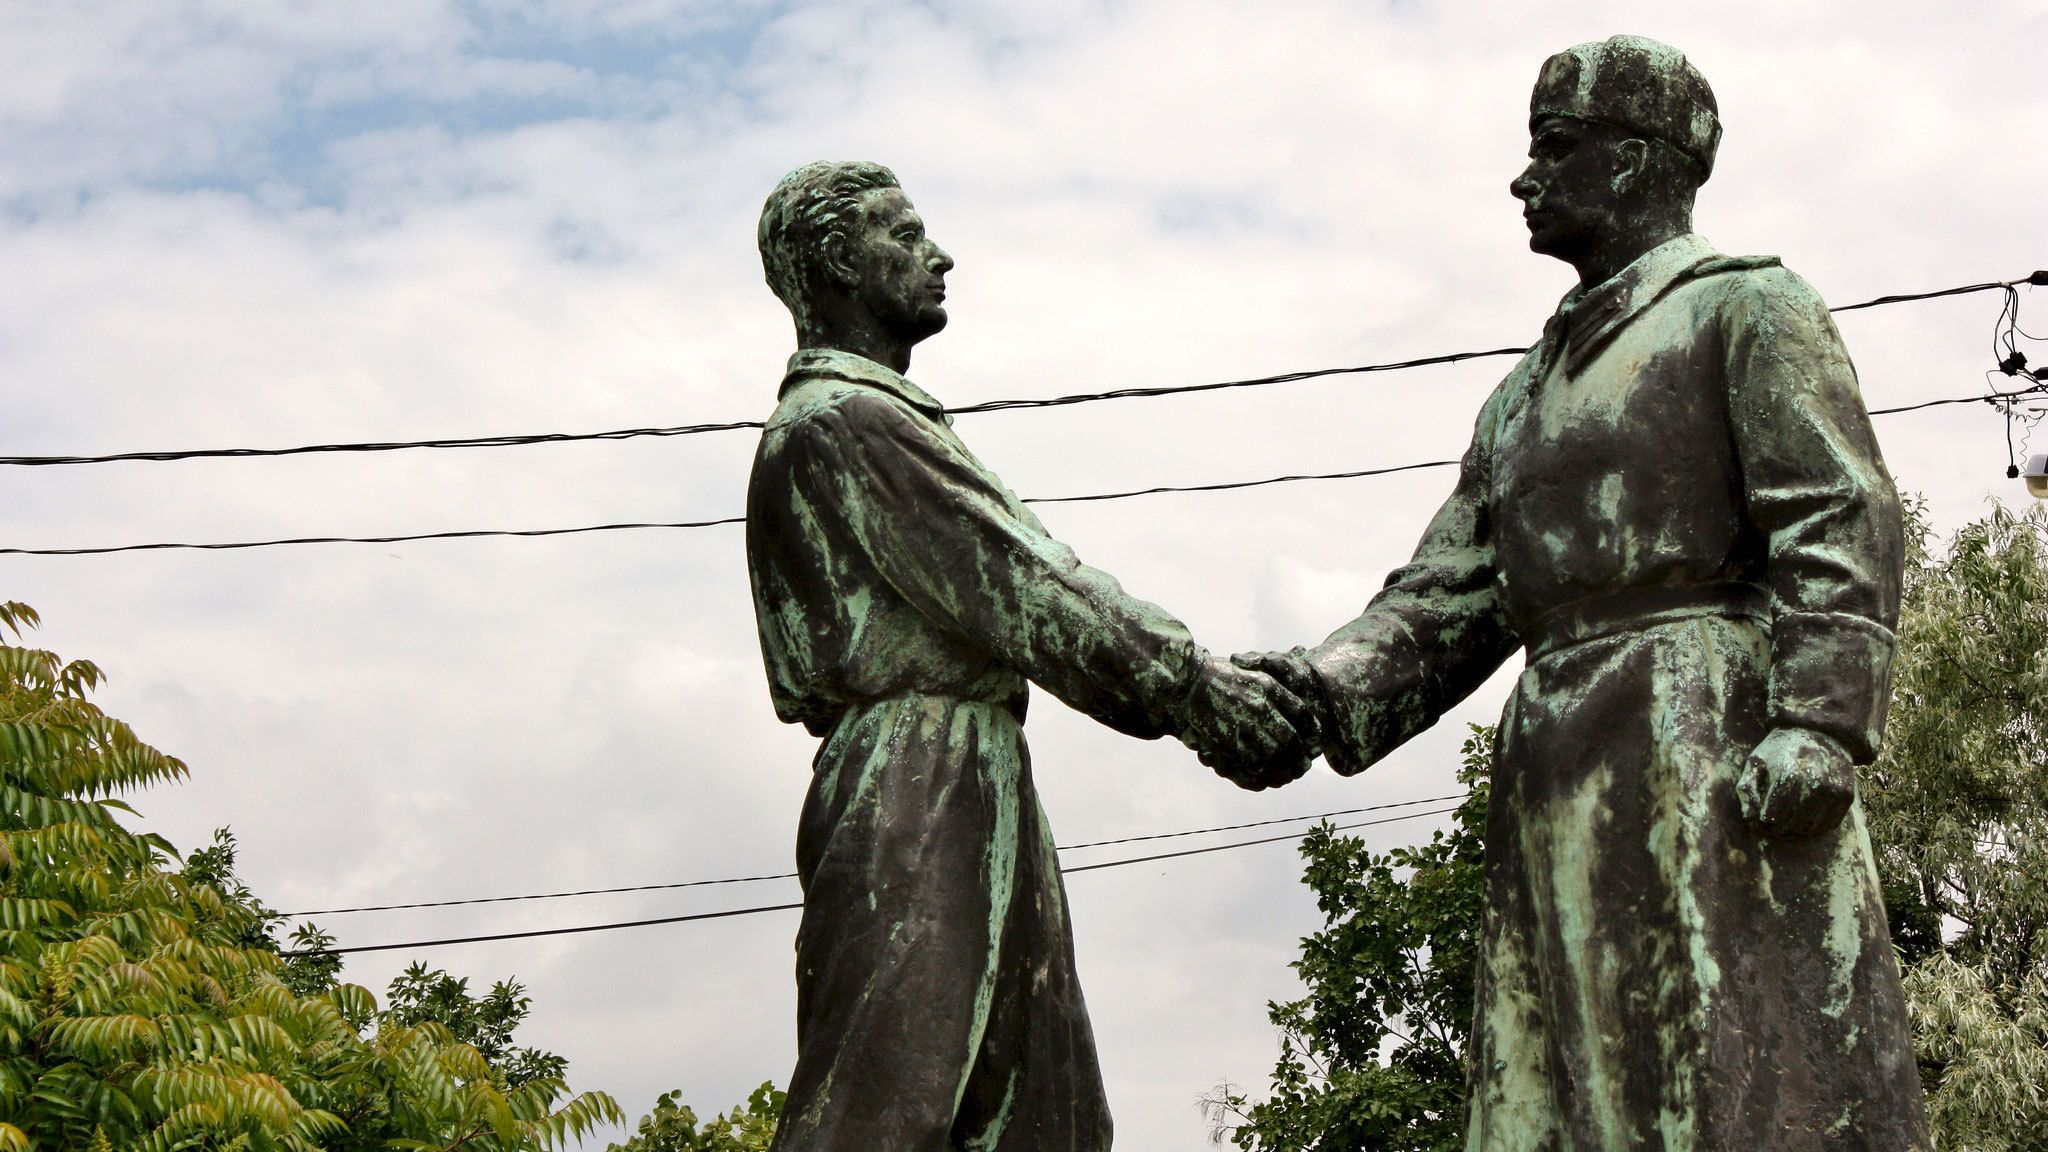 Statue of two men shaking hands in Budapest